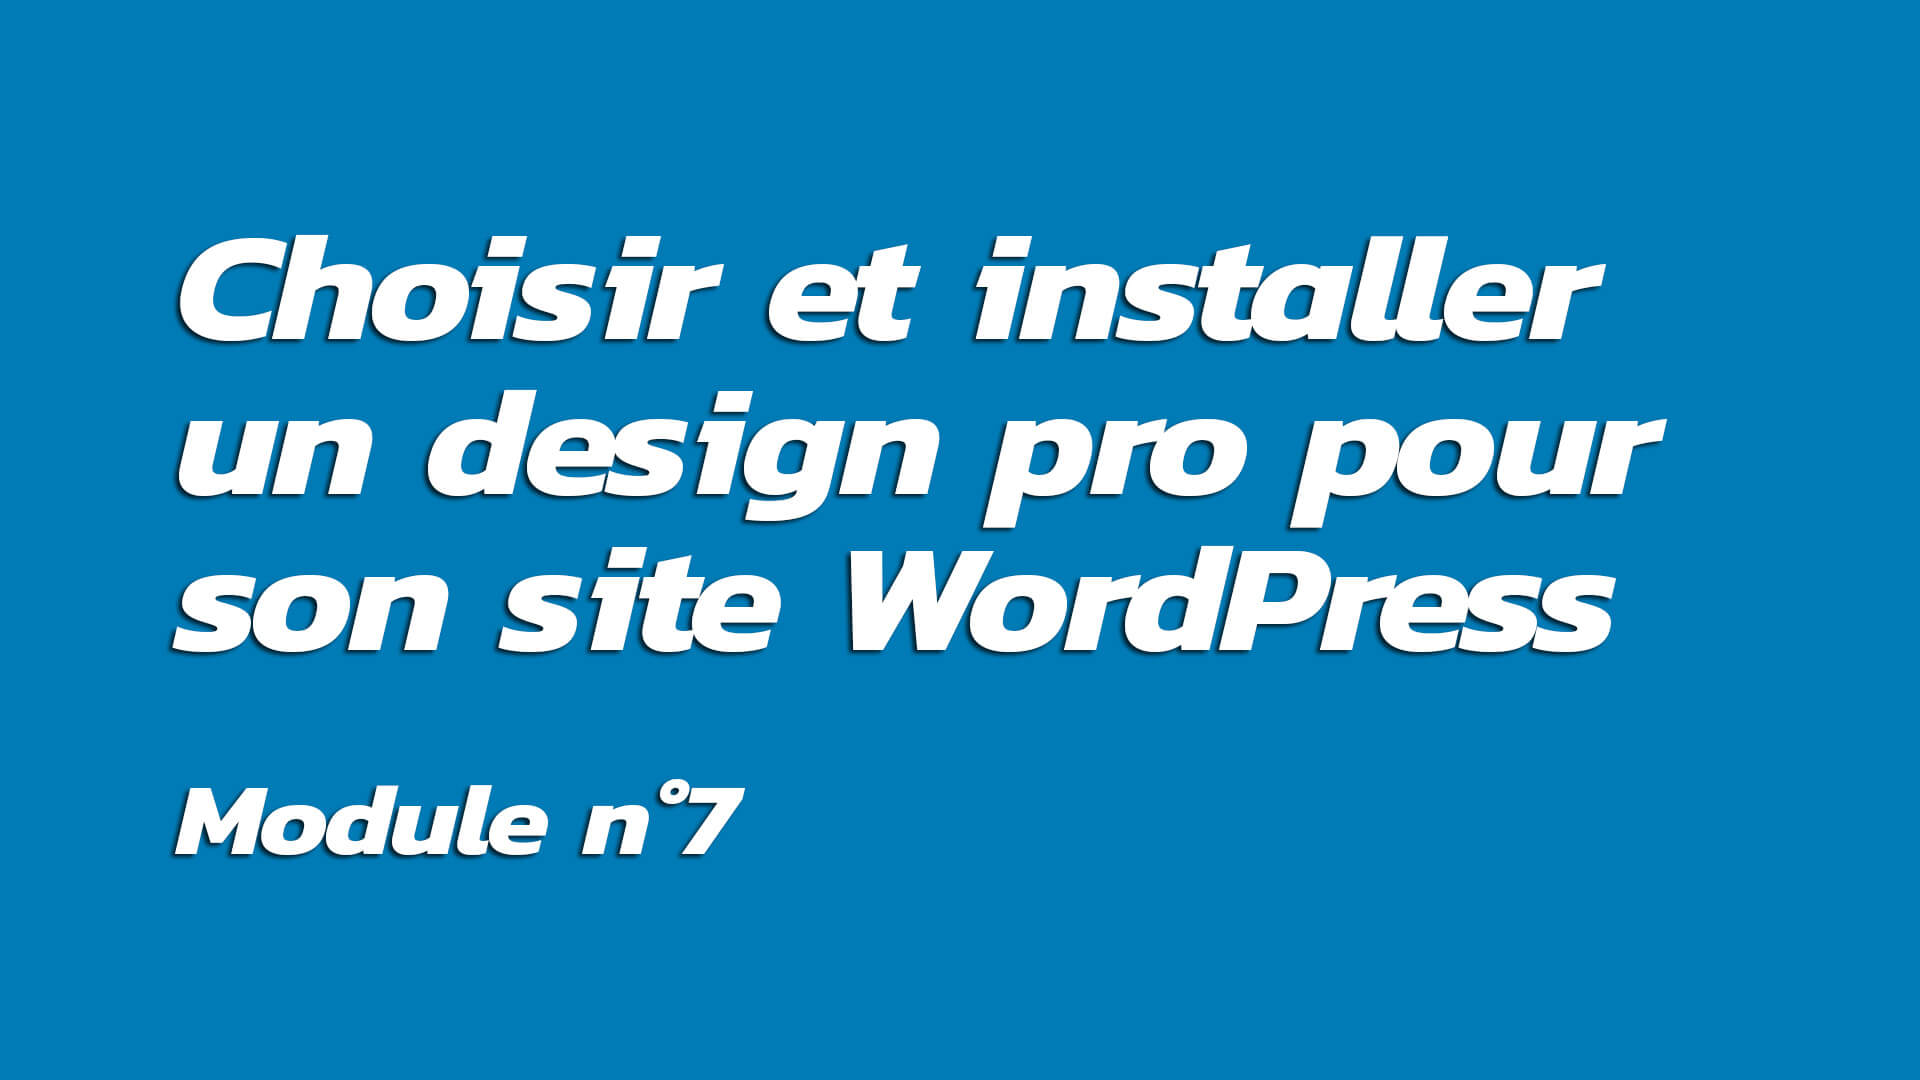 Formation : Choisir et installer un design pro pour son site WordPress